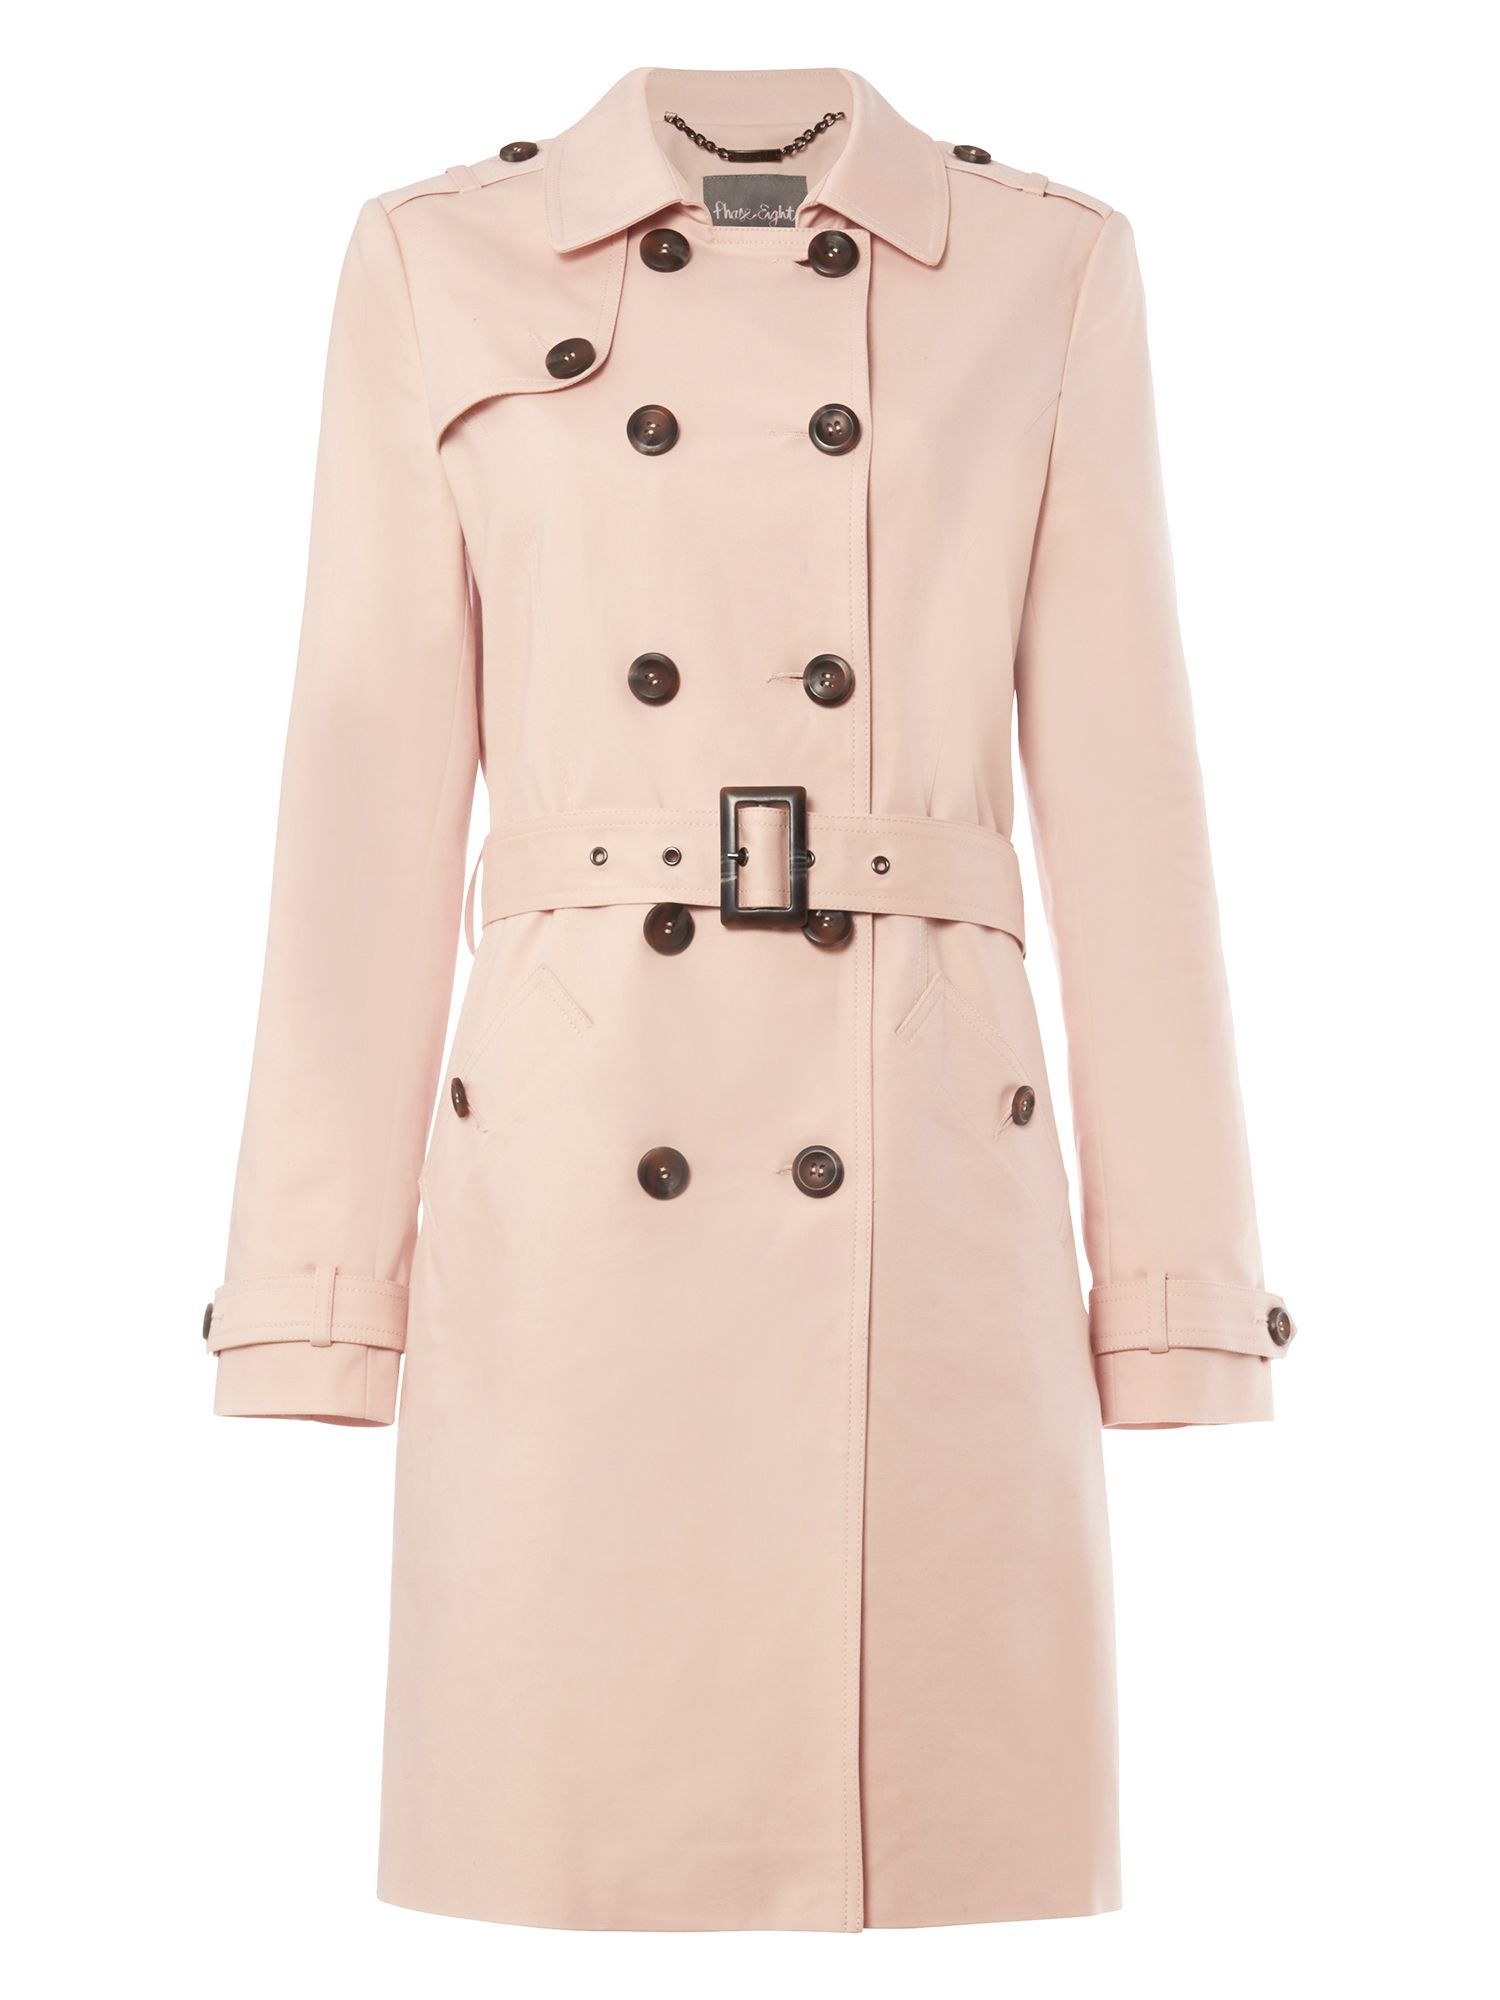 Phase Eight Women's Pink Coats & Jackets at House of Fraser